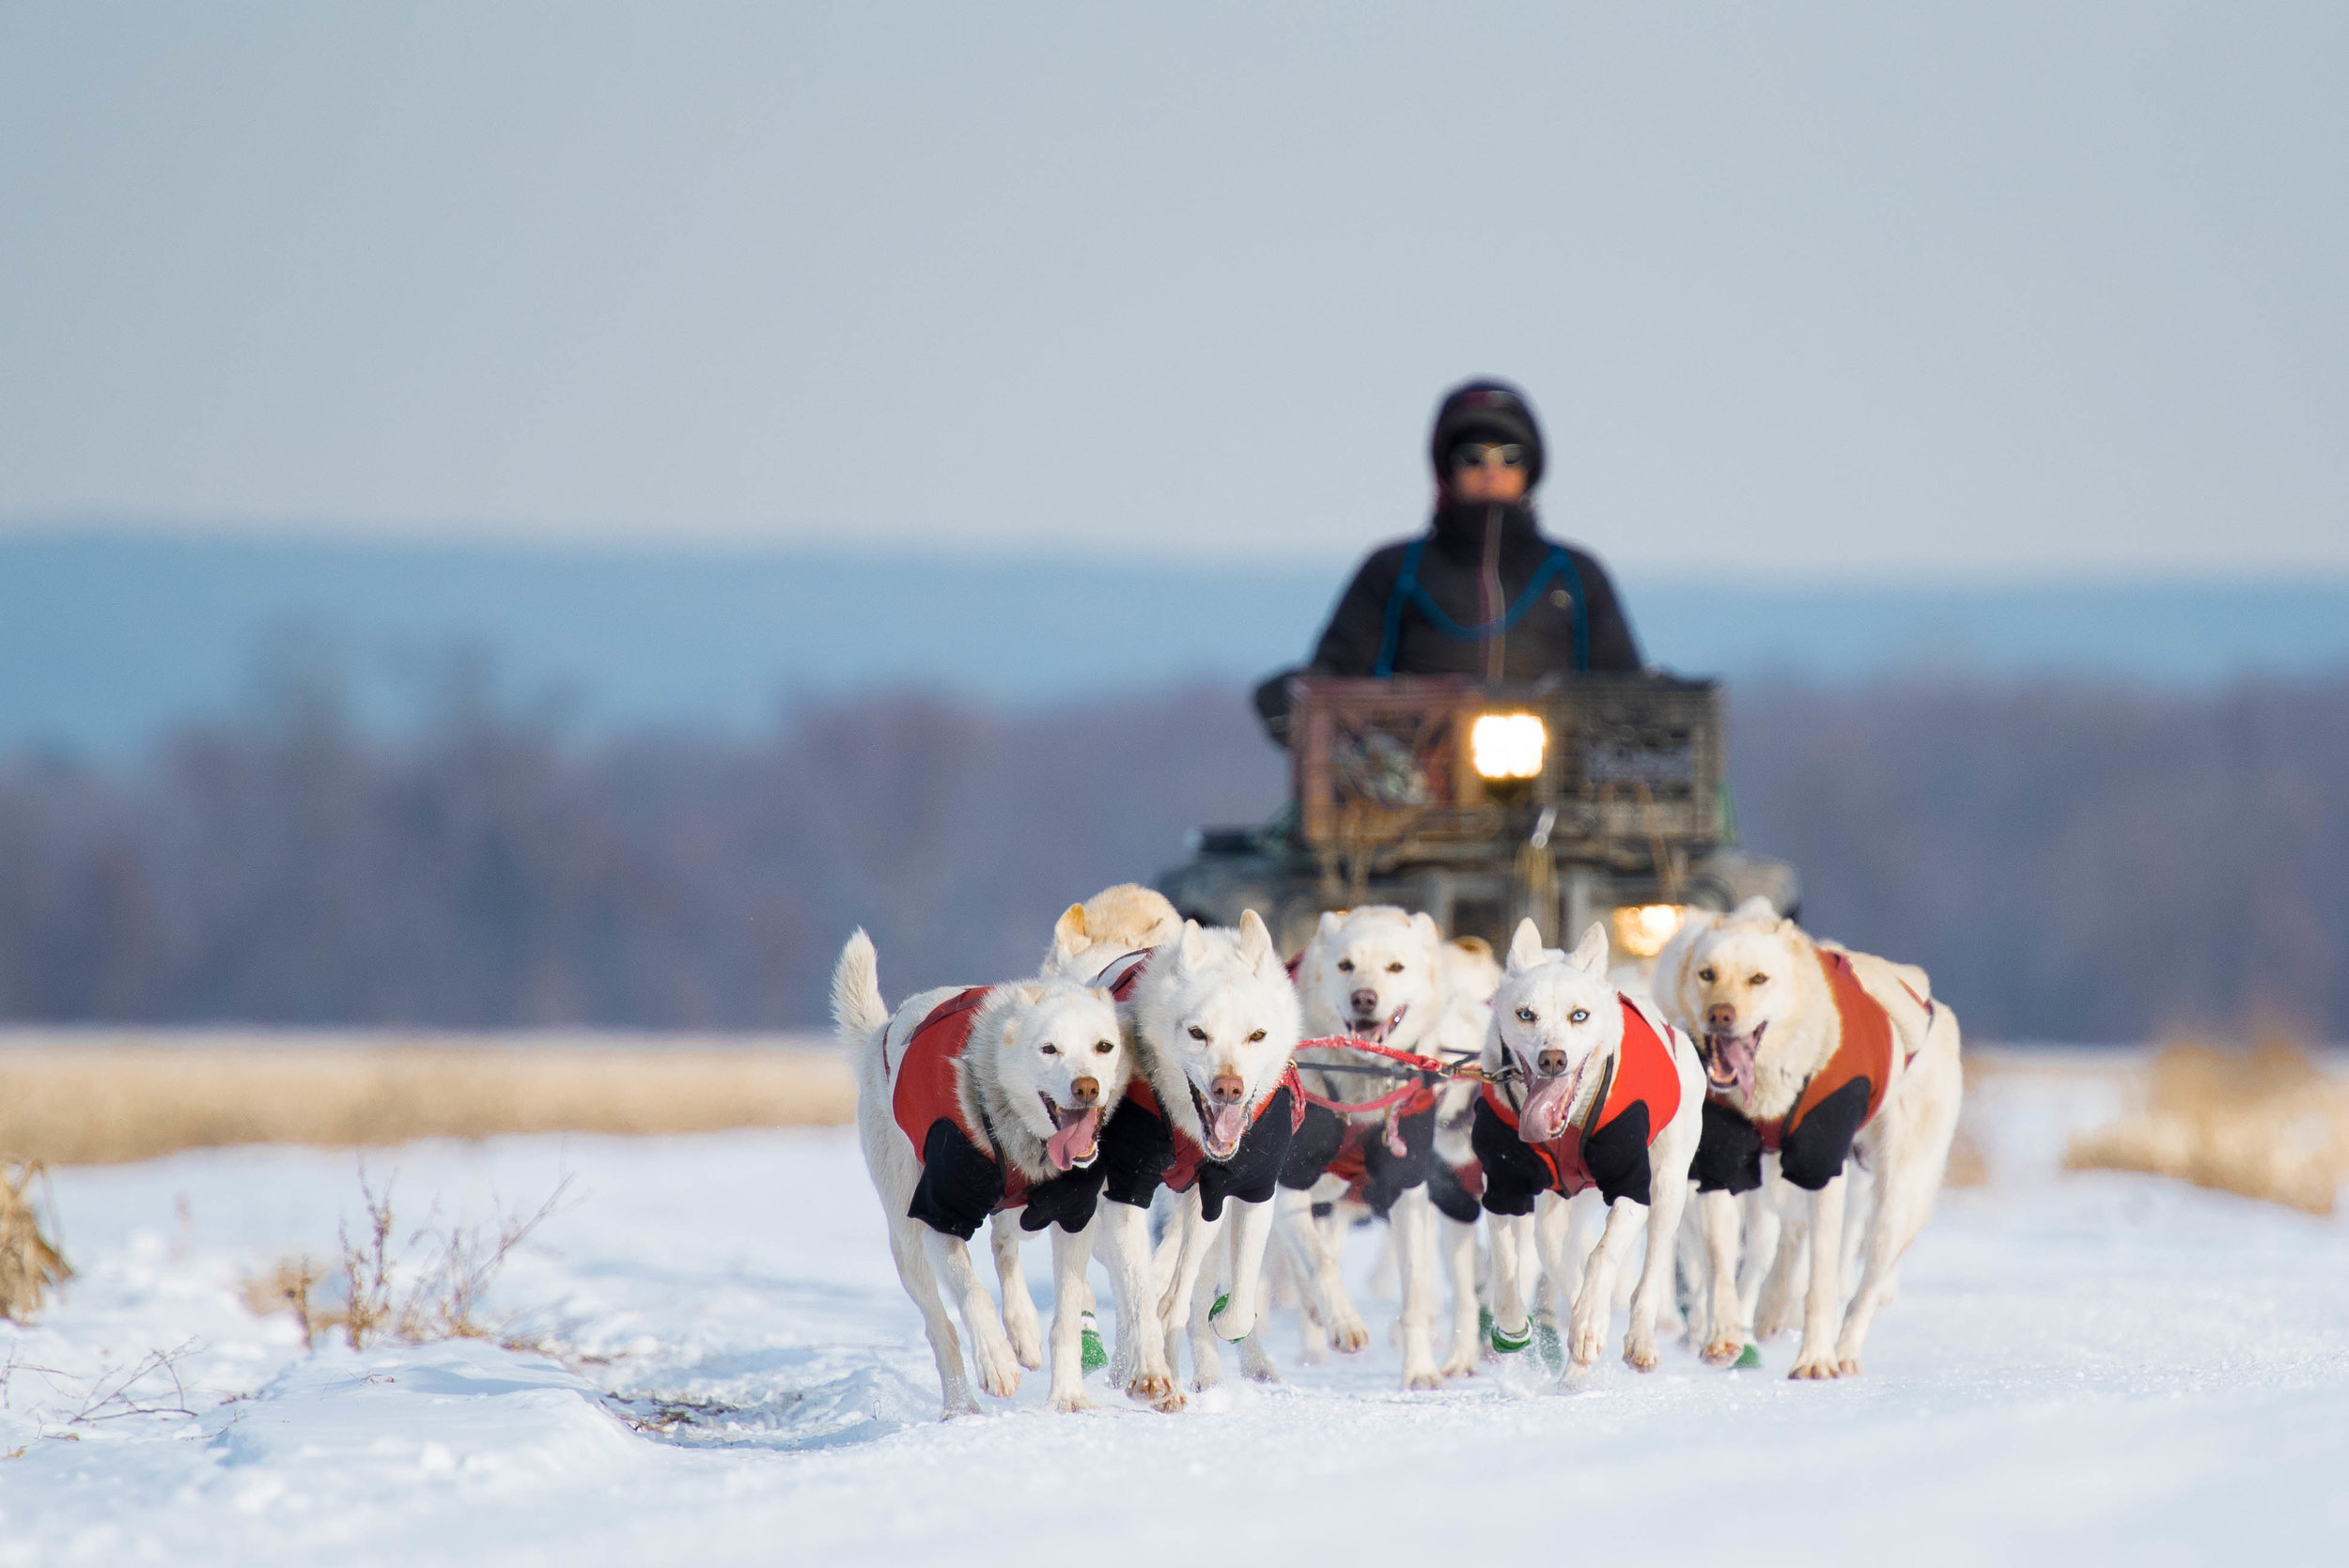 Marla Brodsky and her team of Alaskan Huskies from Hilltown Sleddogs train in Western Massachusetts for the 250 mile Can-Am Crown International Race in Maine. Brodsky has dedicated her life to her mushing since she observed the sport while traveling in Alaska during 2007.  Living entirely off the grid with her 22 dogs, she is determined to cross the finish line this March.